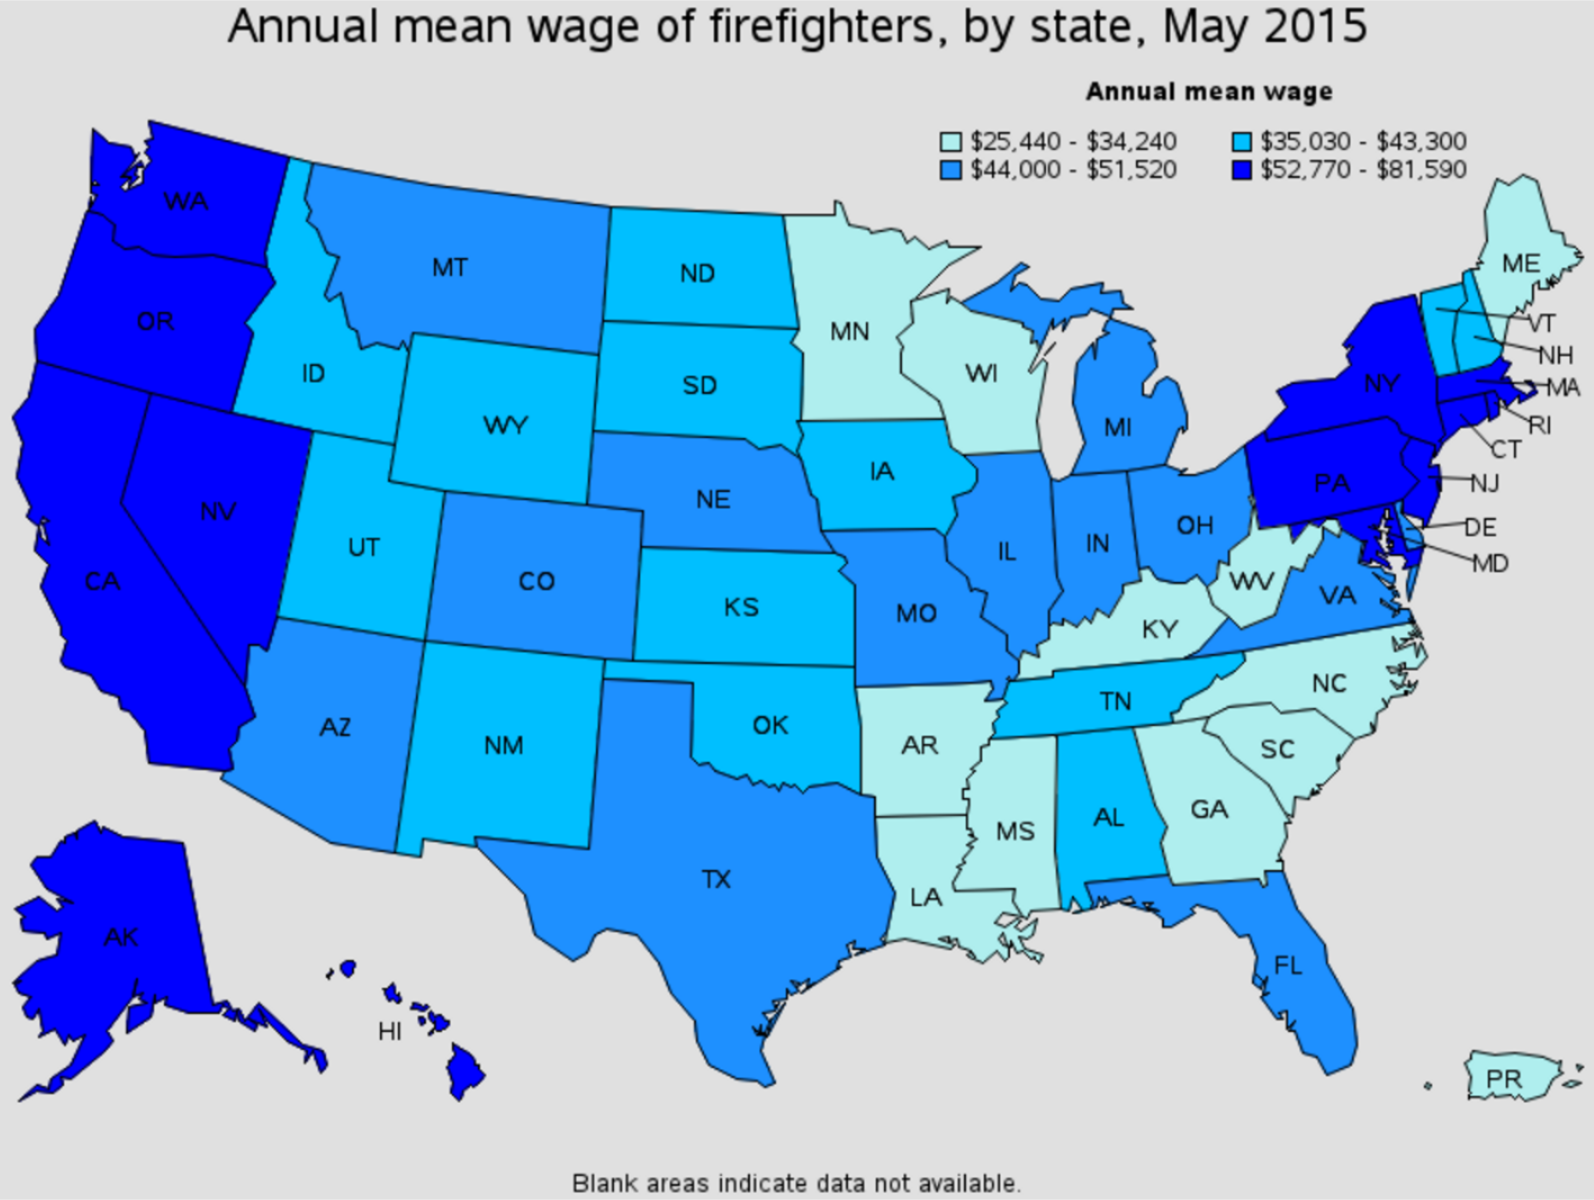 firefighter average salary by state Cross City Florida